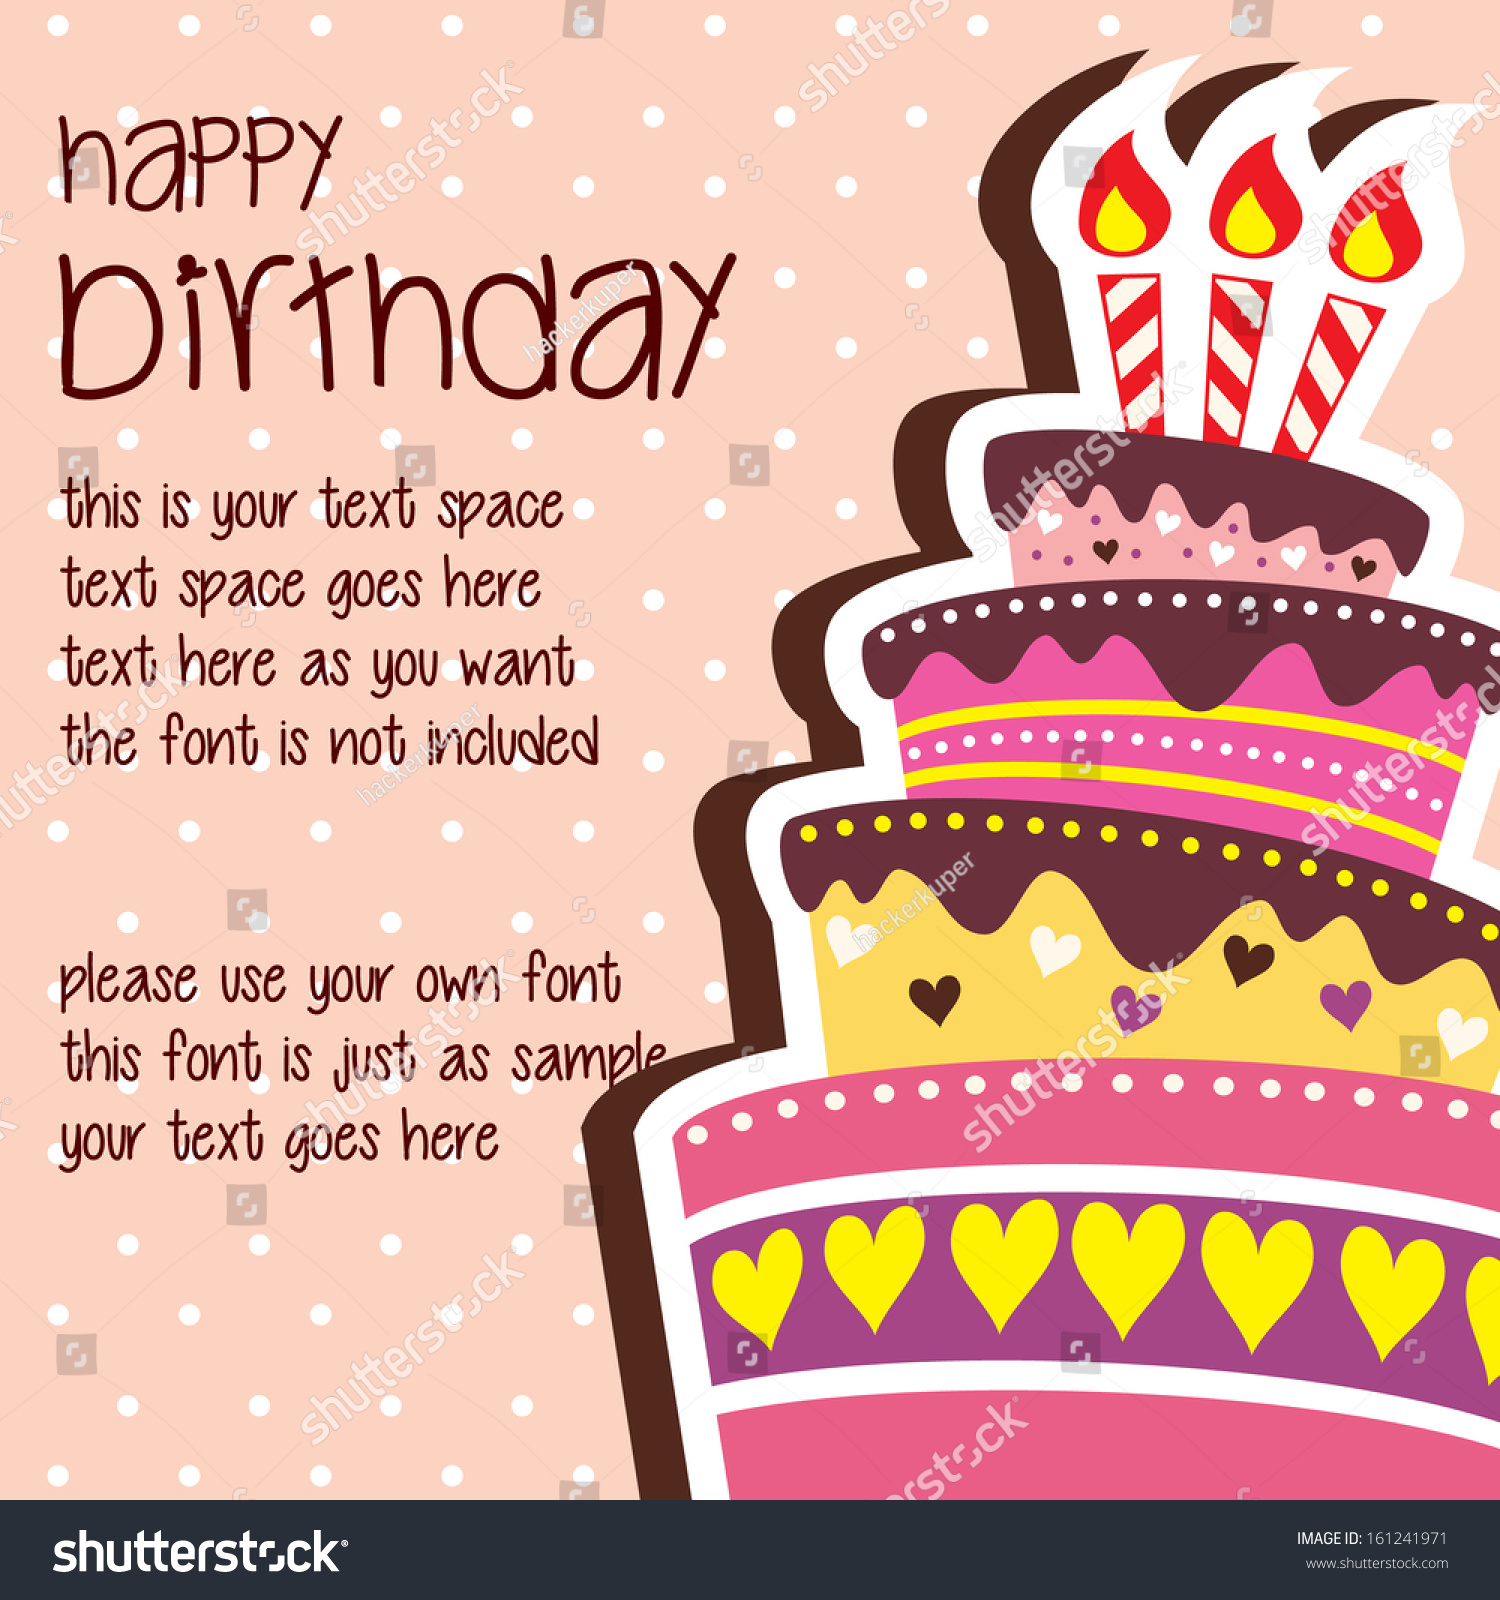 Birthday Postcard Template